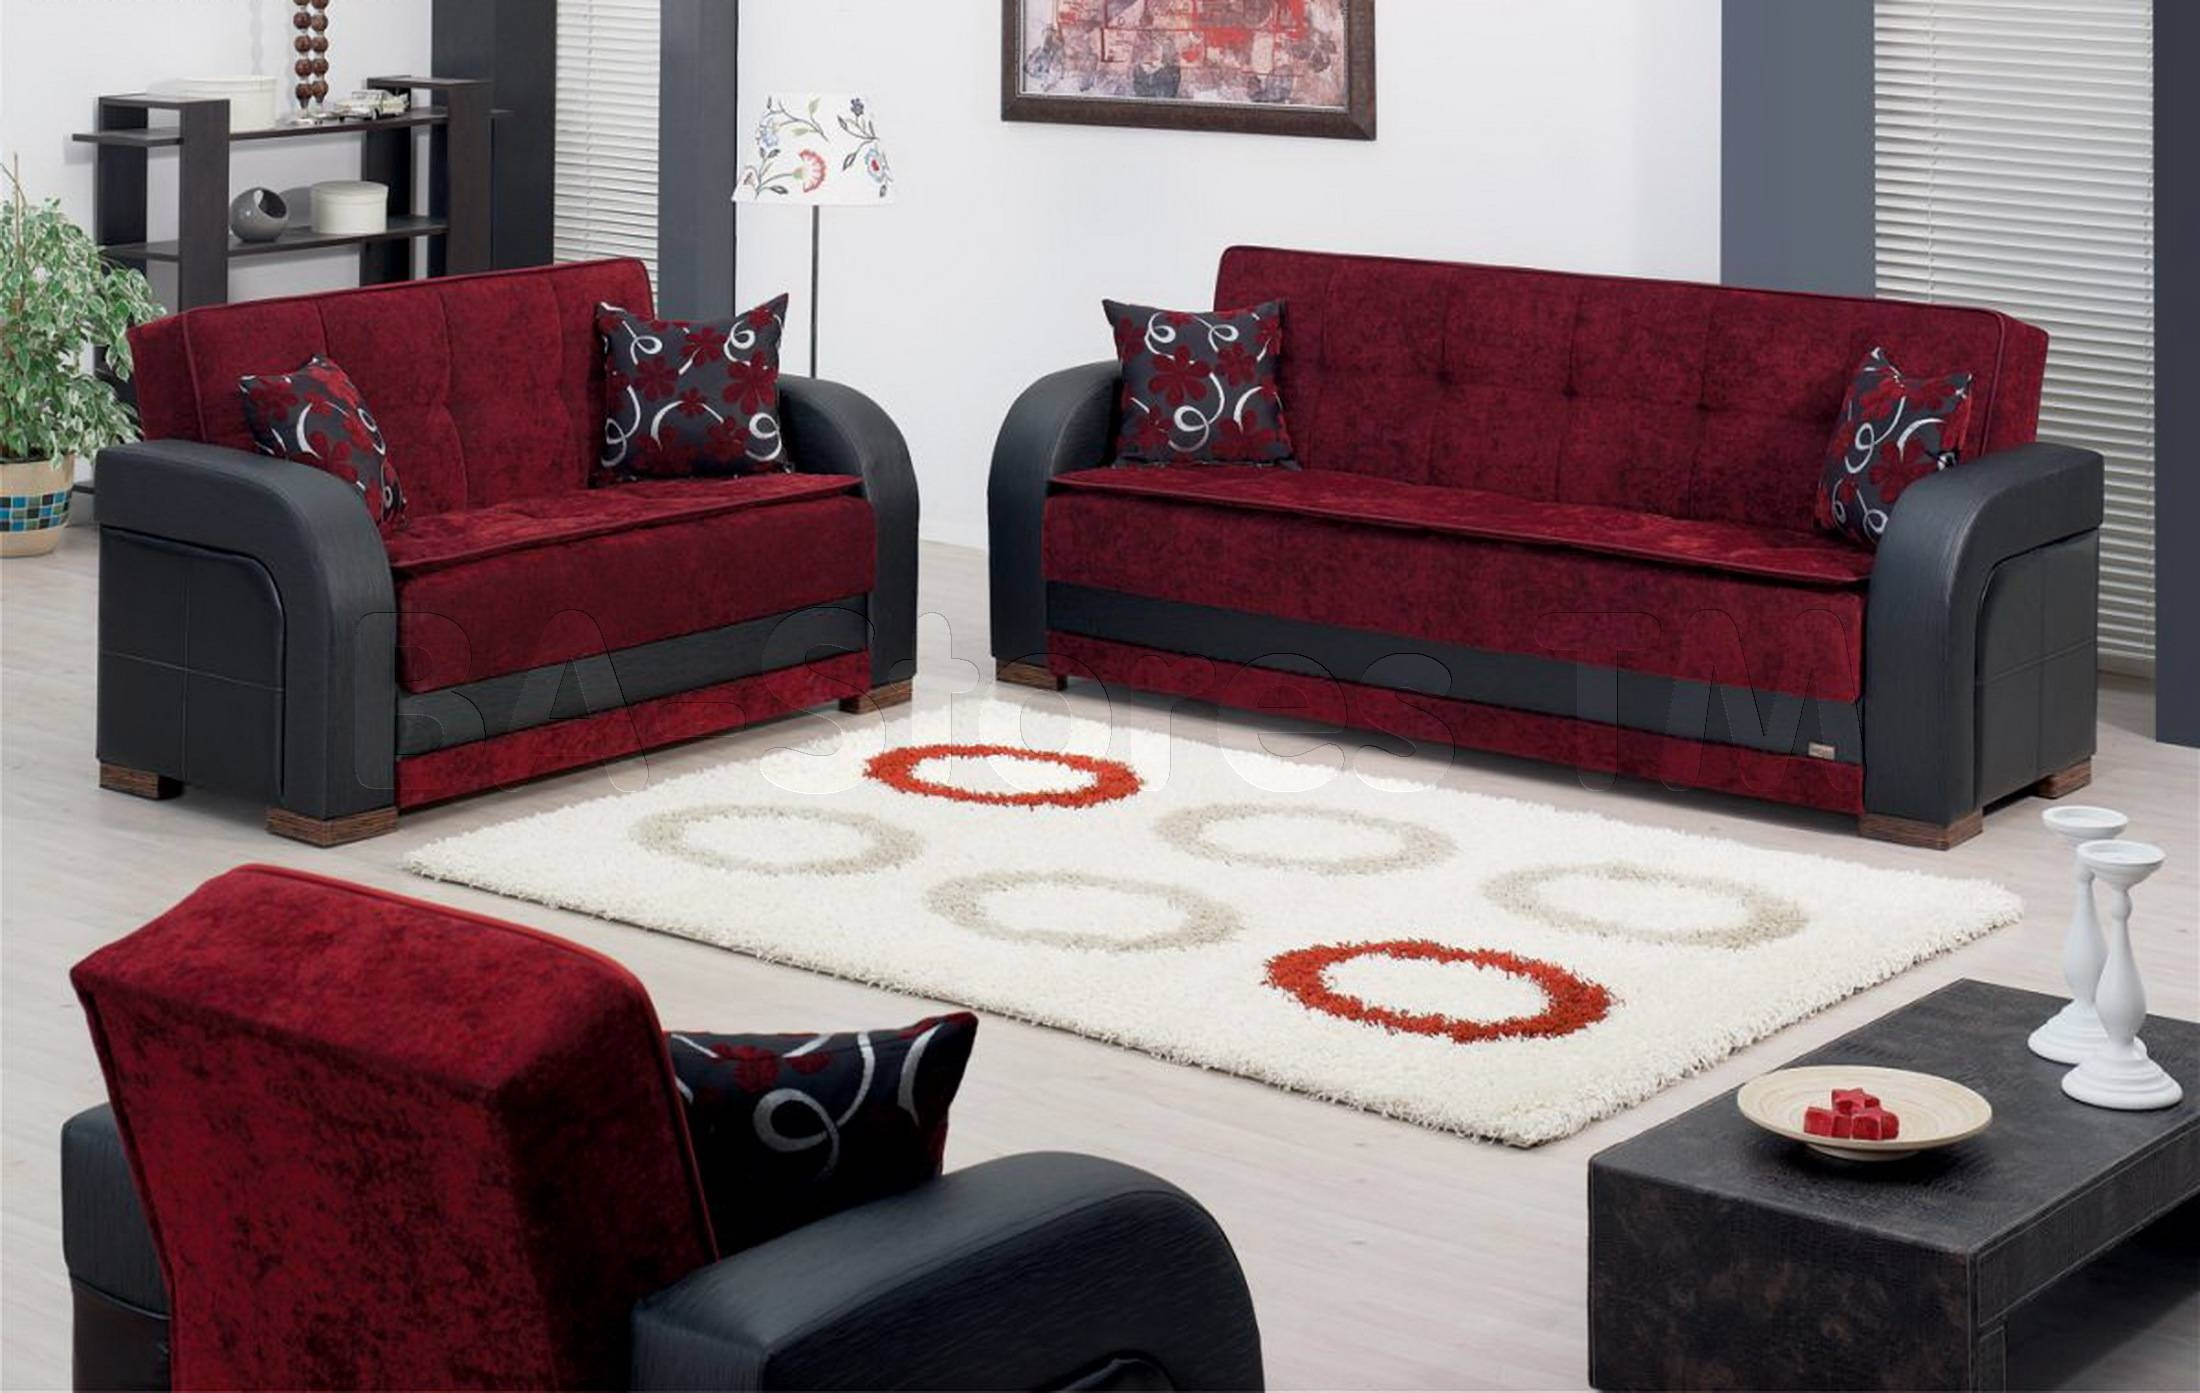 Sale: $1658.00 Paterson 3 Pc Black And Burgundy Sofa Set (Sofa inside Burgundy Sectional Sofas (Image 9 of 15)